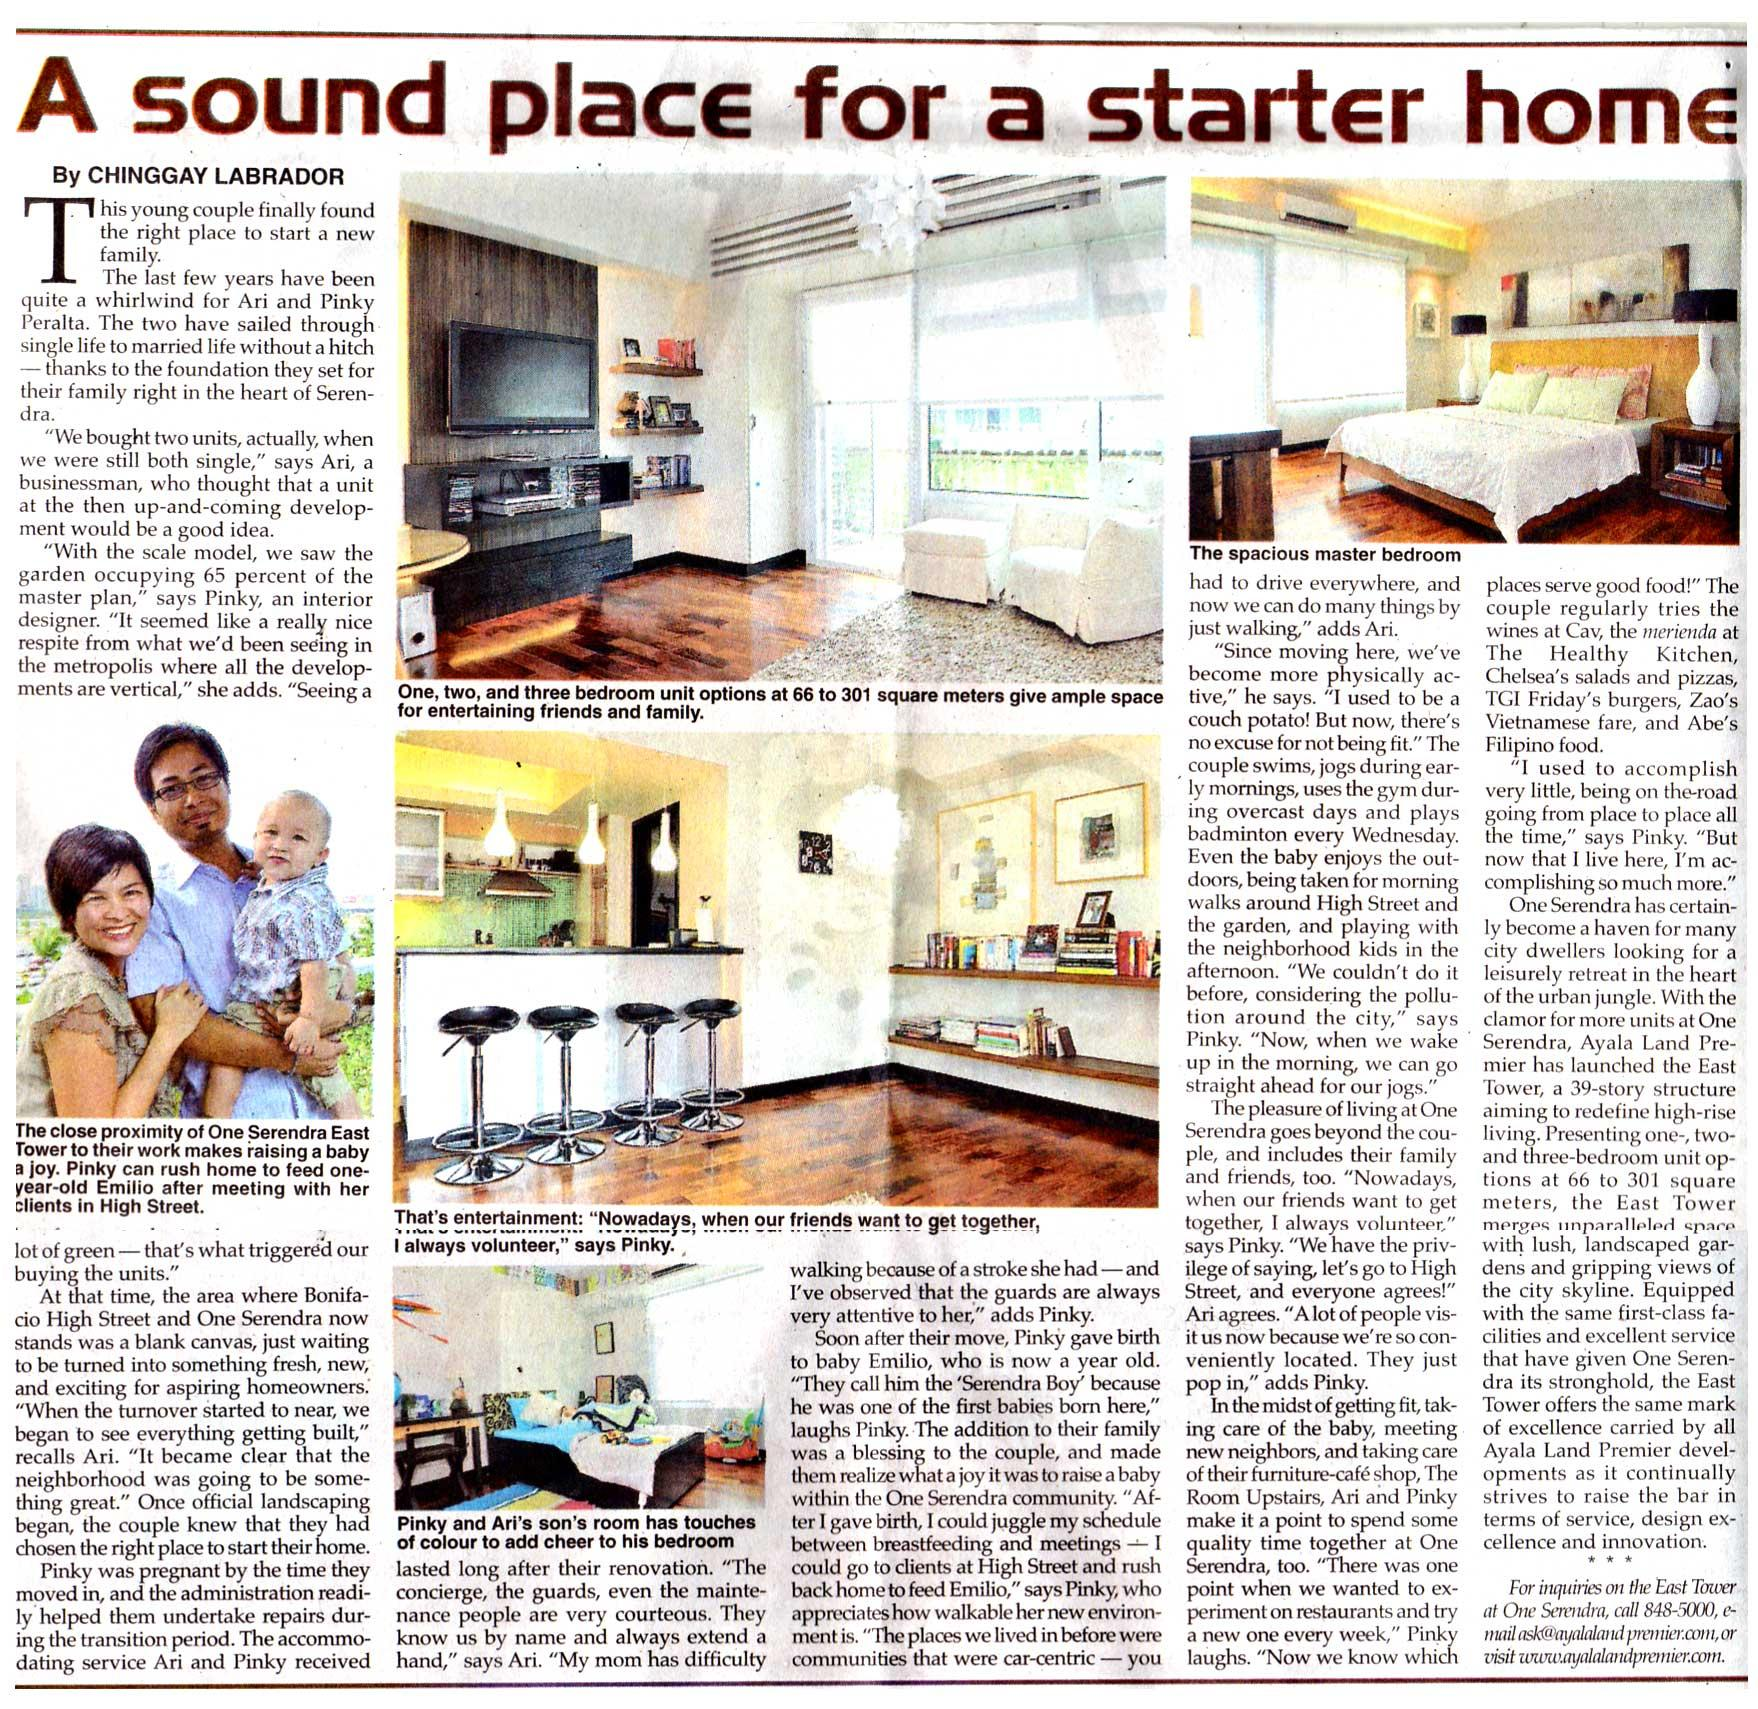 a-sound-place-for-a-starter-home